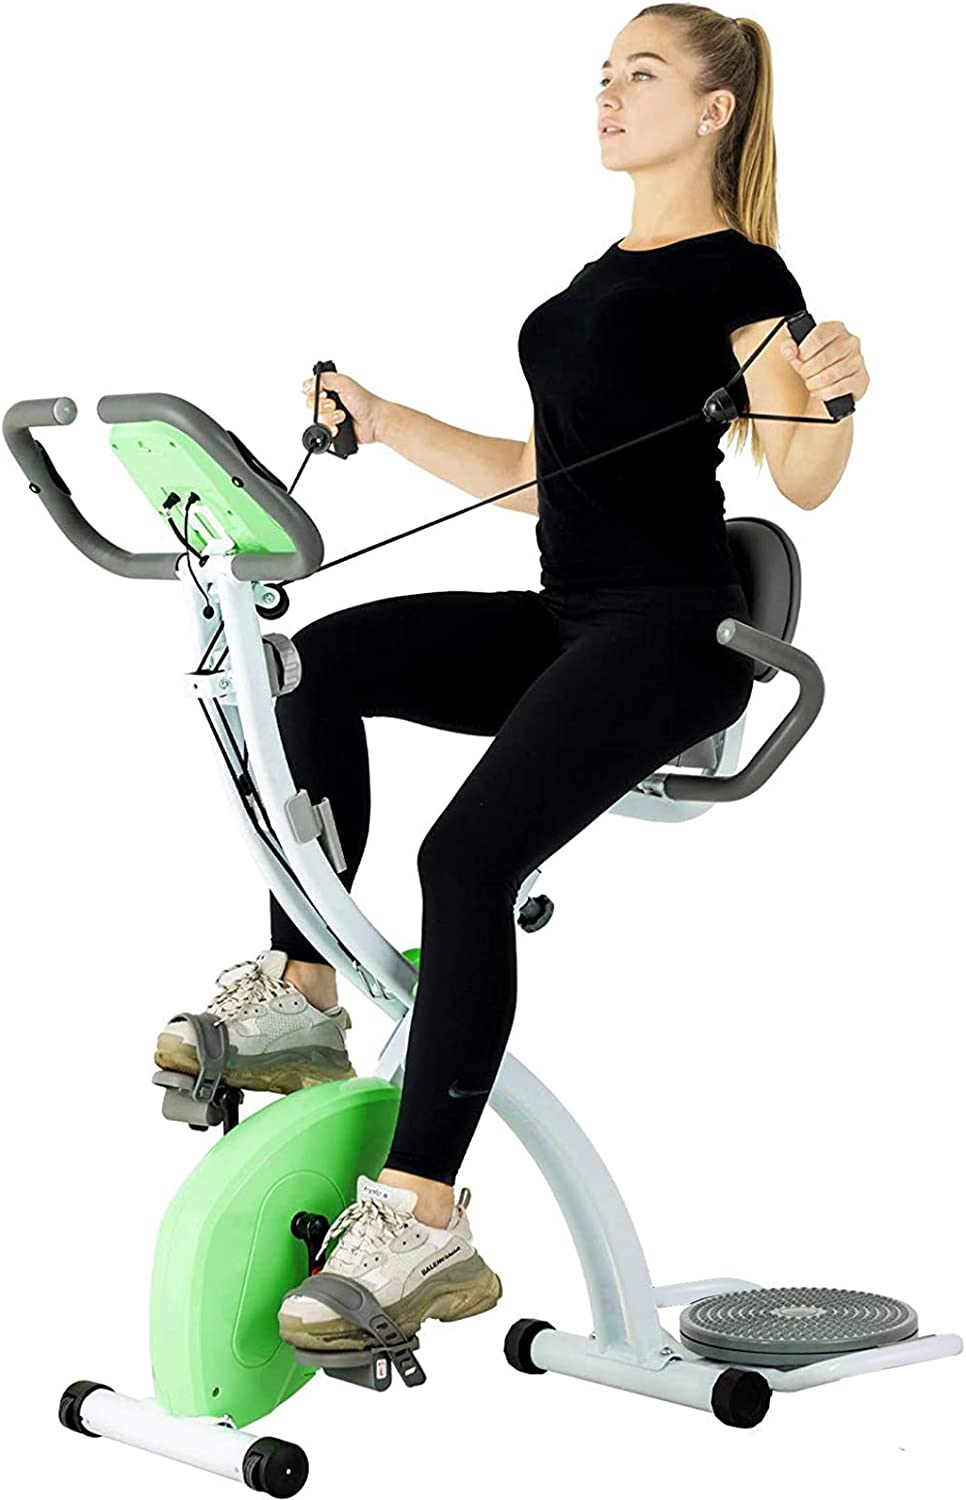 Murtisol Stationary Bike Reviews & Specification: